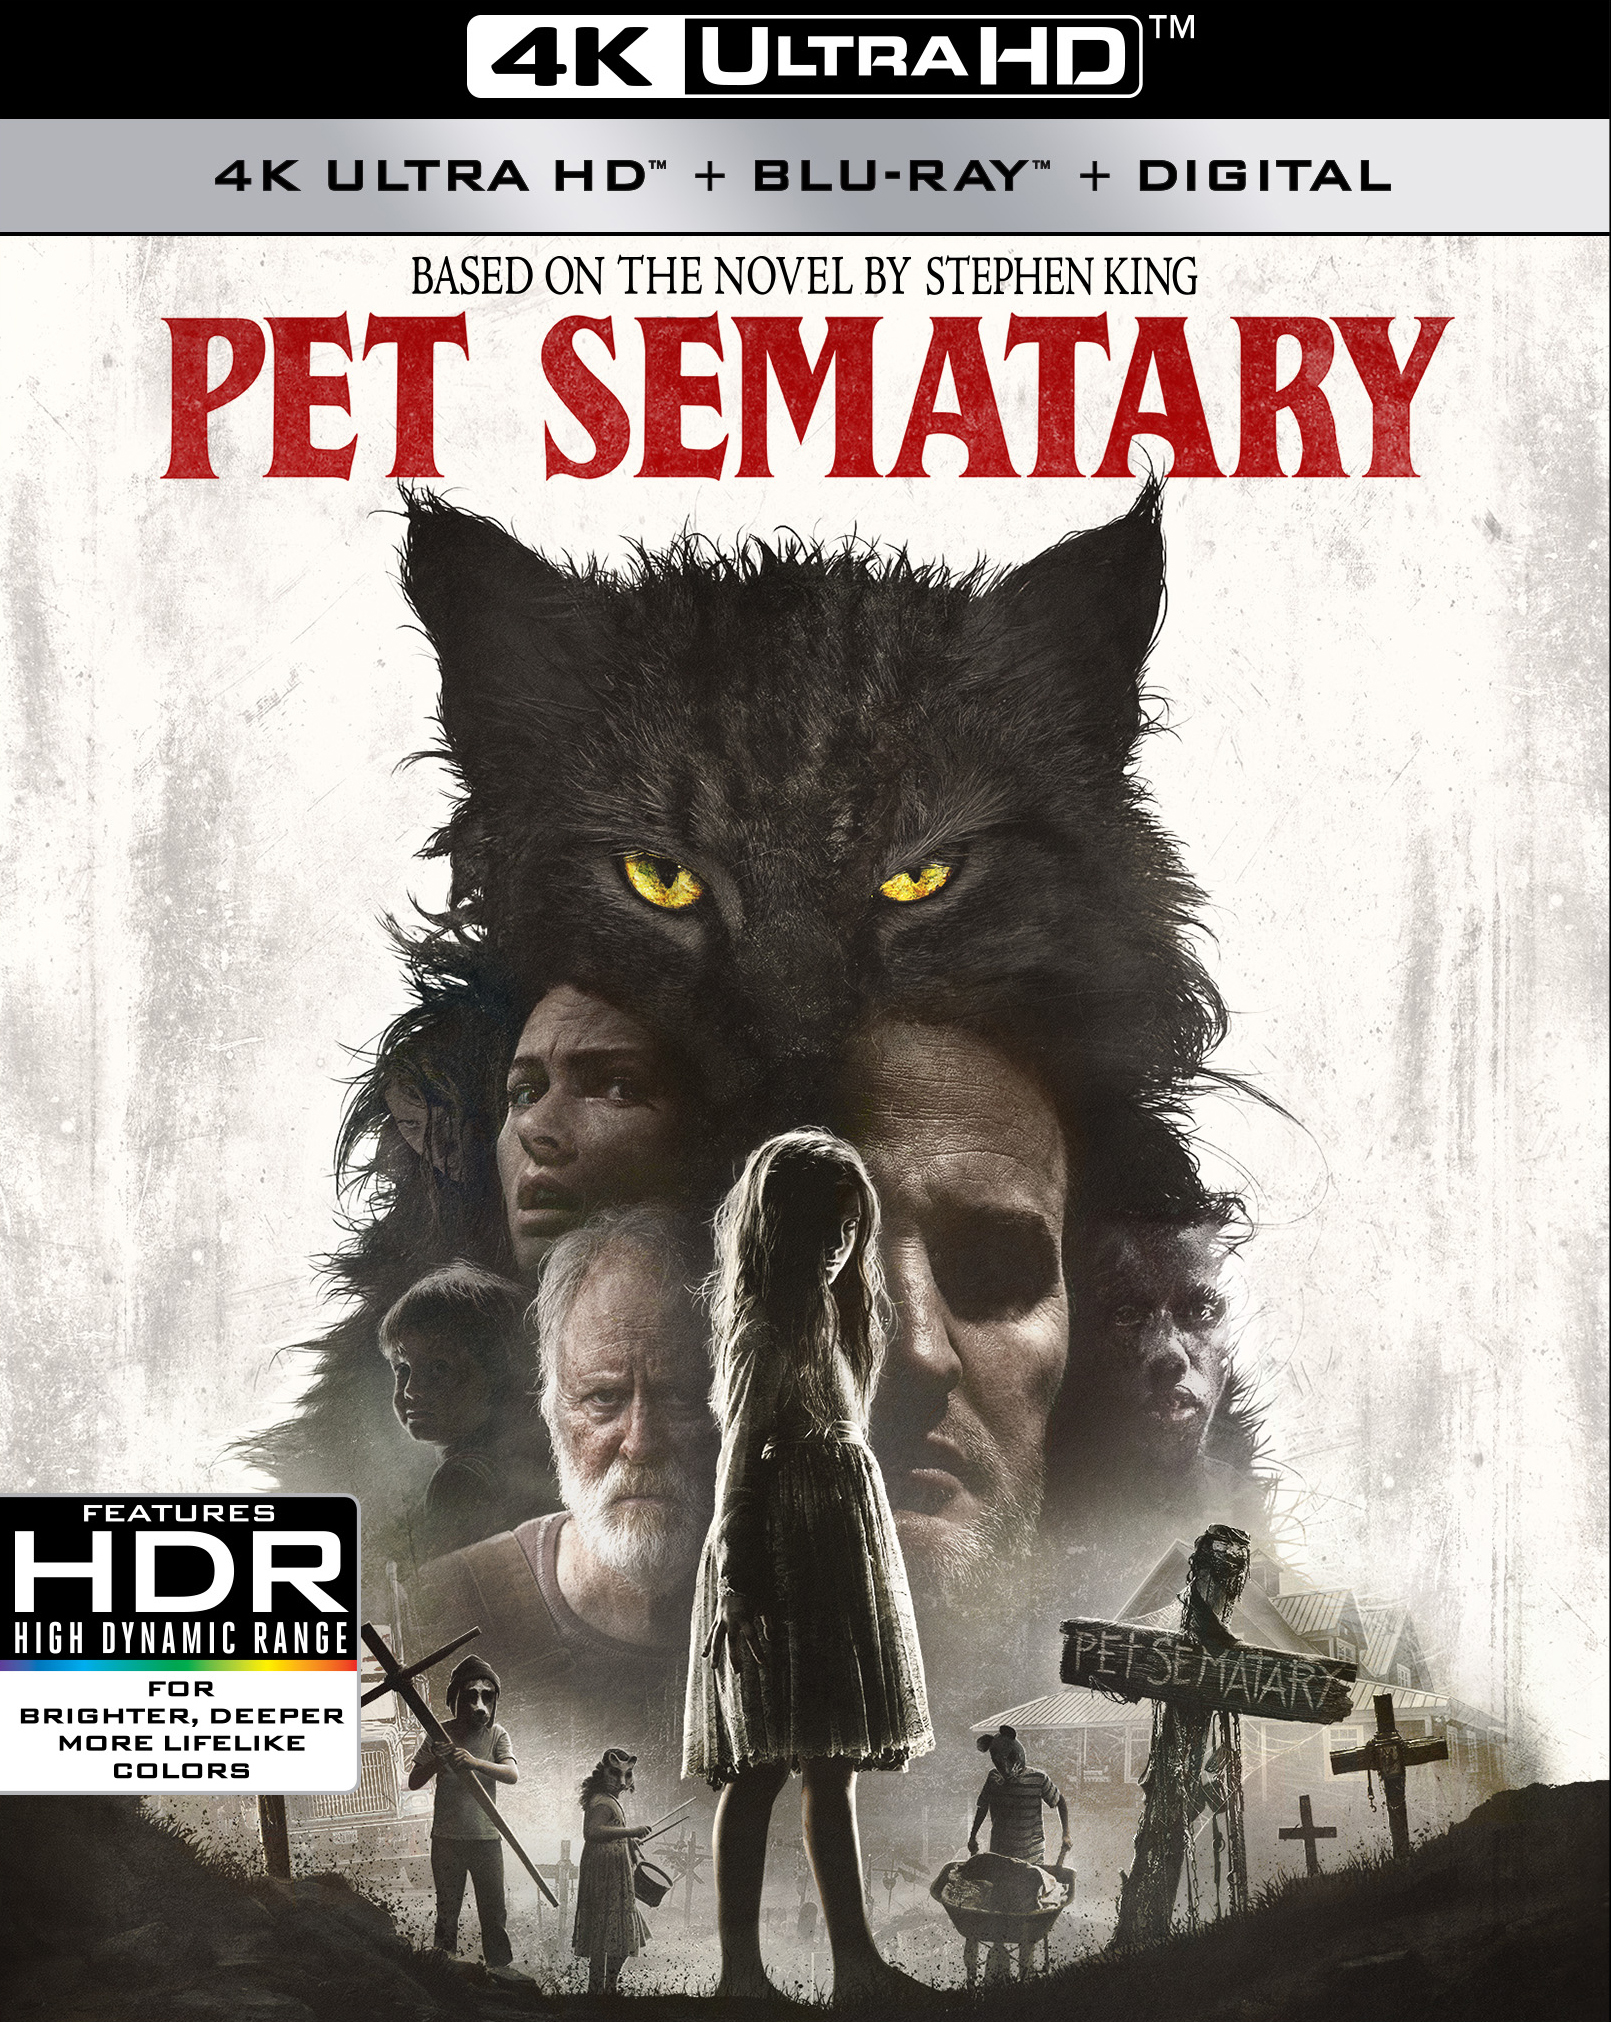 Download Pet Sematary (2019) 2160p SDR 8bit BluRay x264 [Org